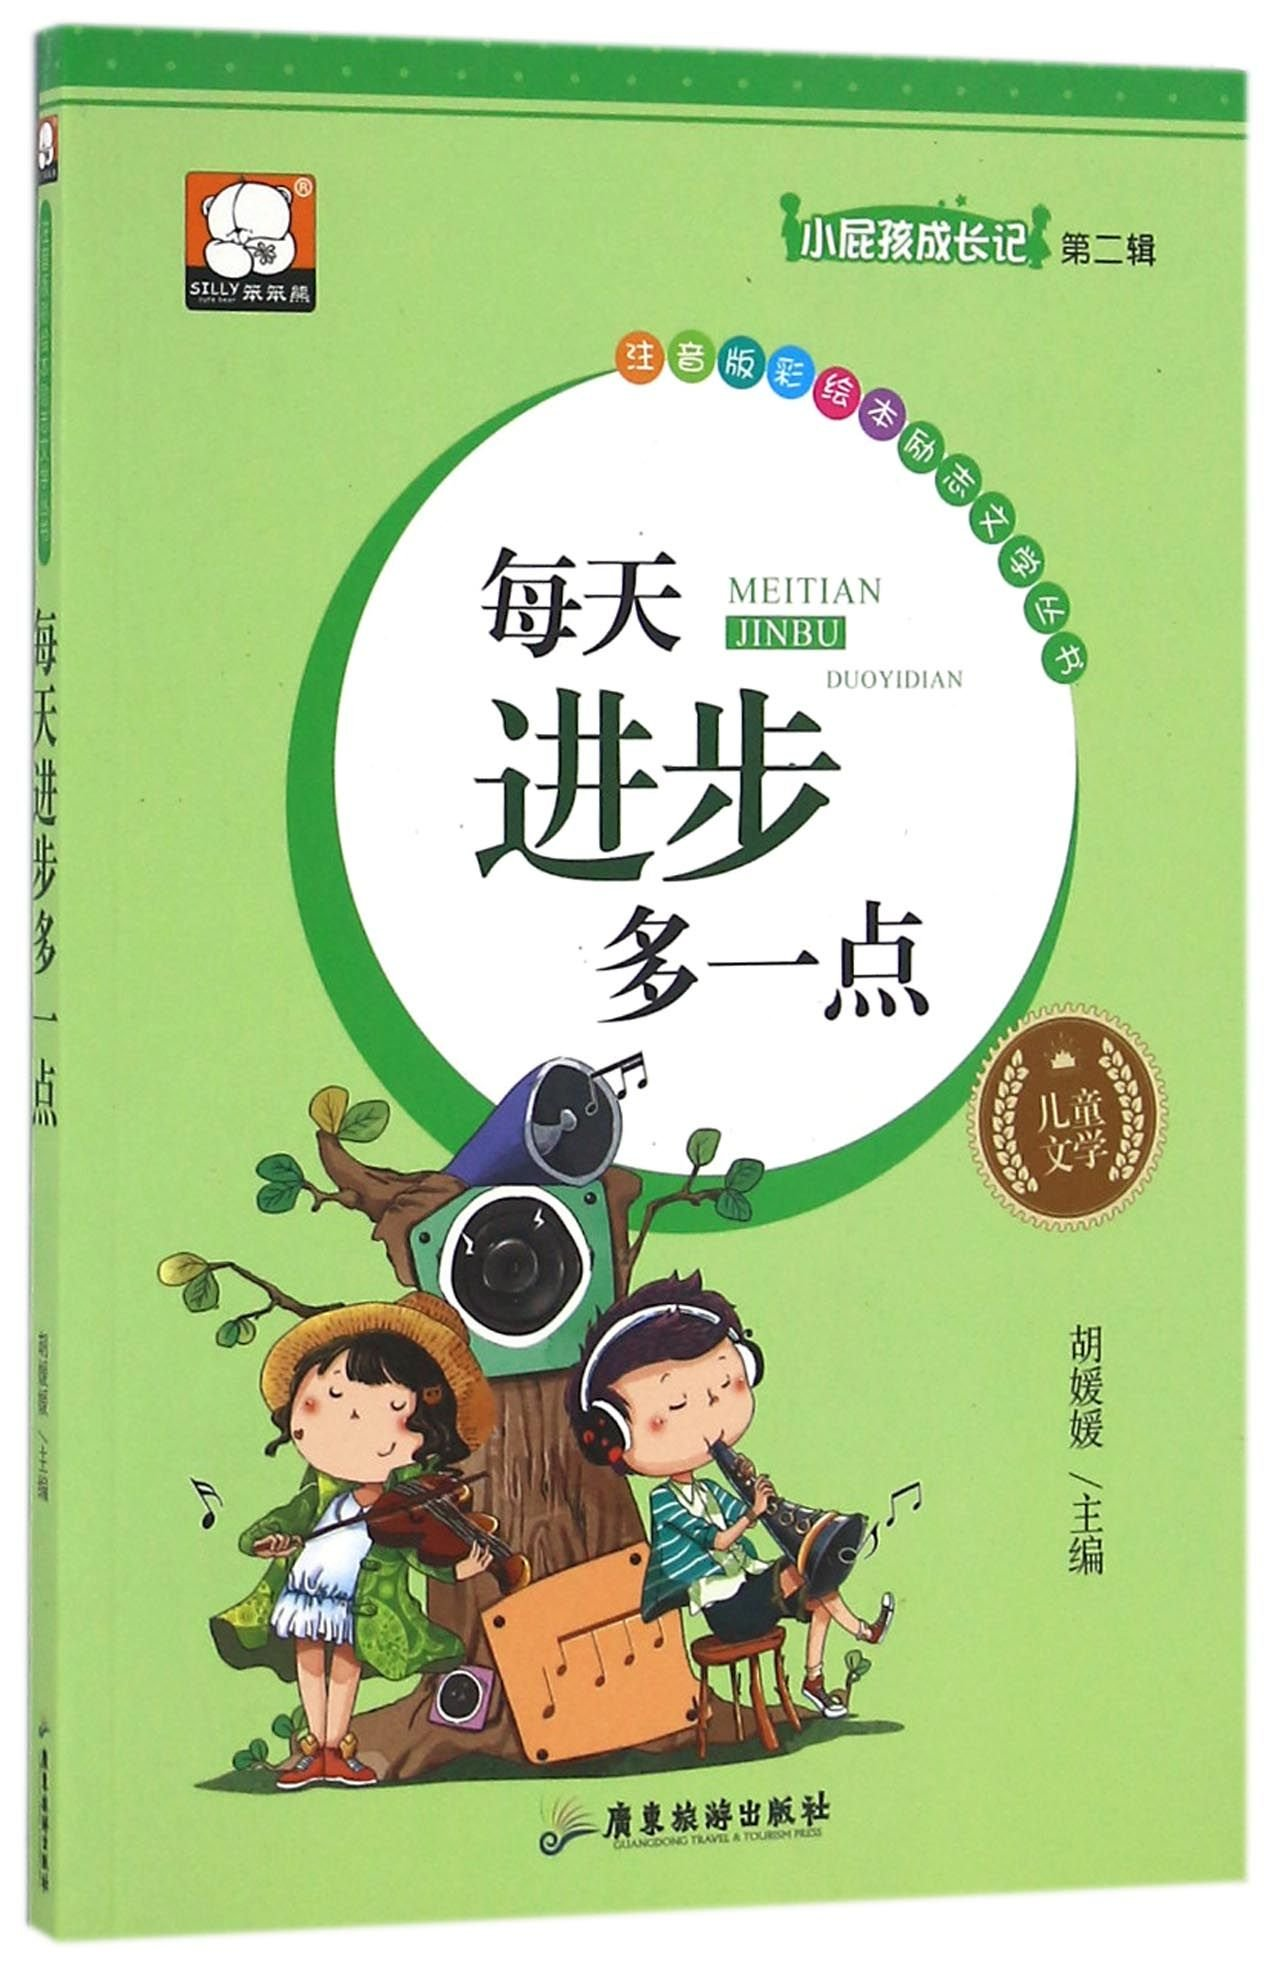 Download A Little More Progress Every Day (Chinese Edition) ebook